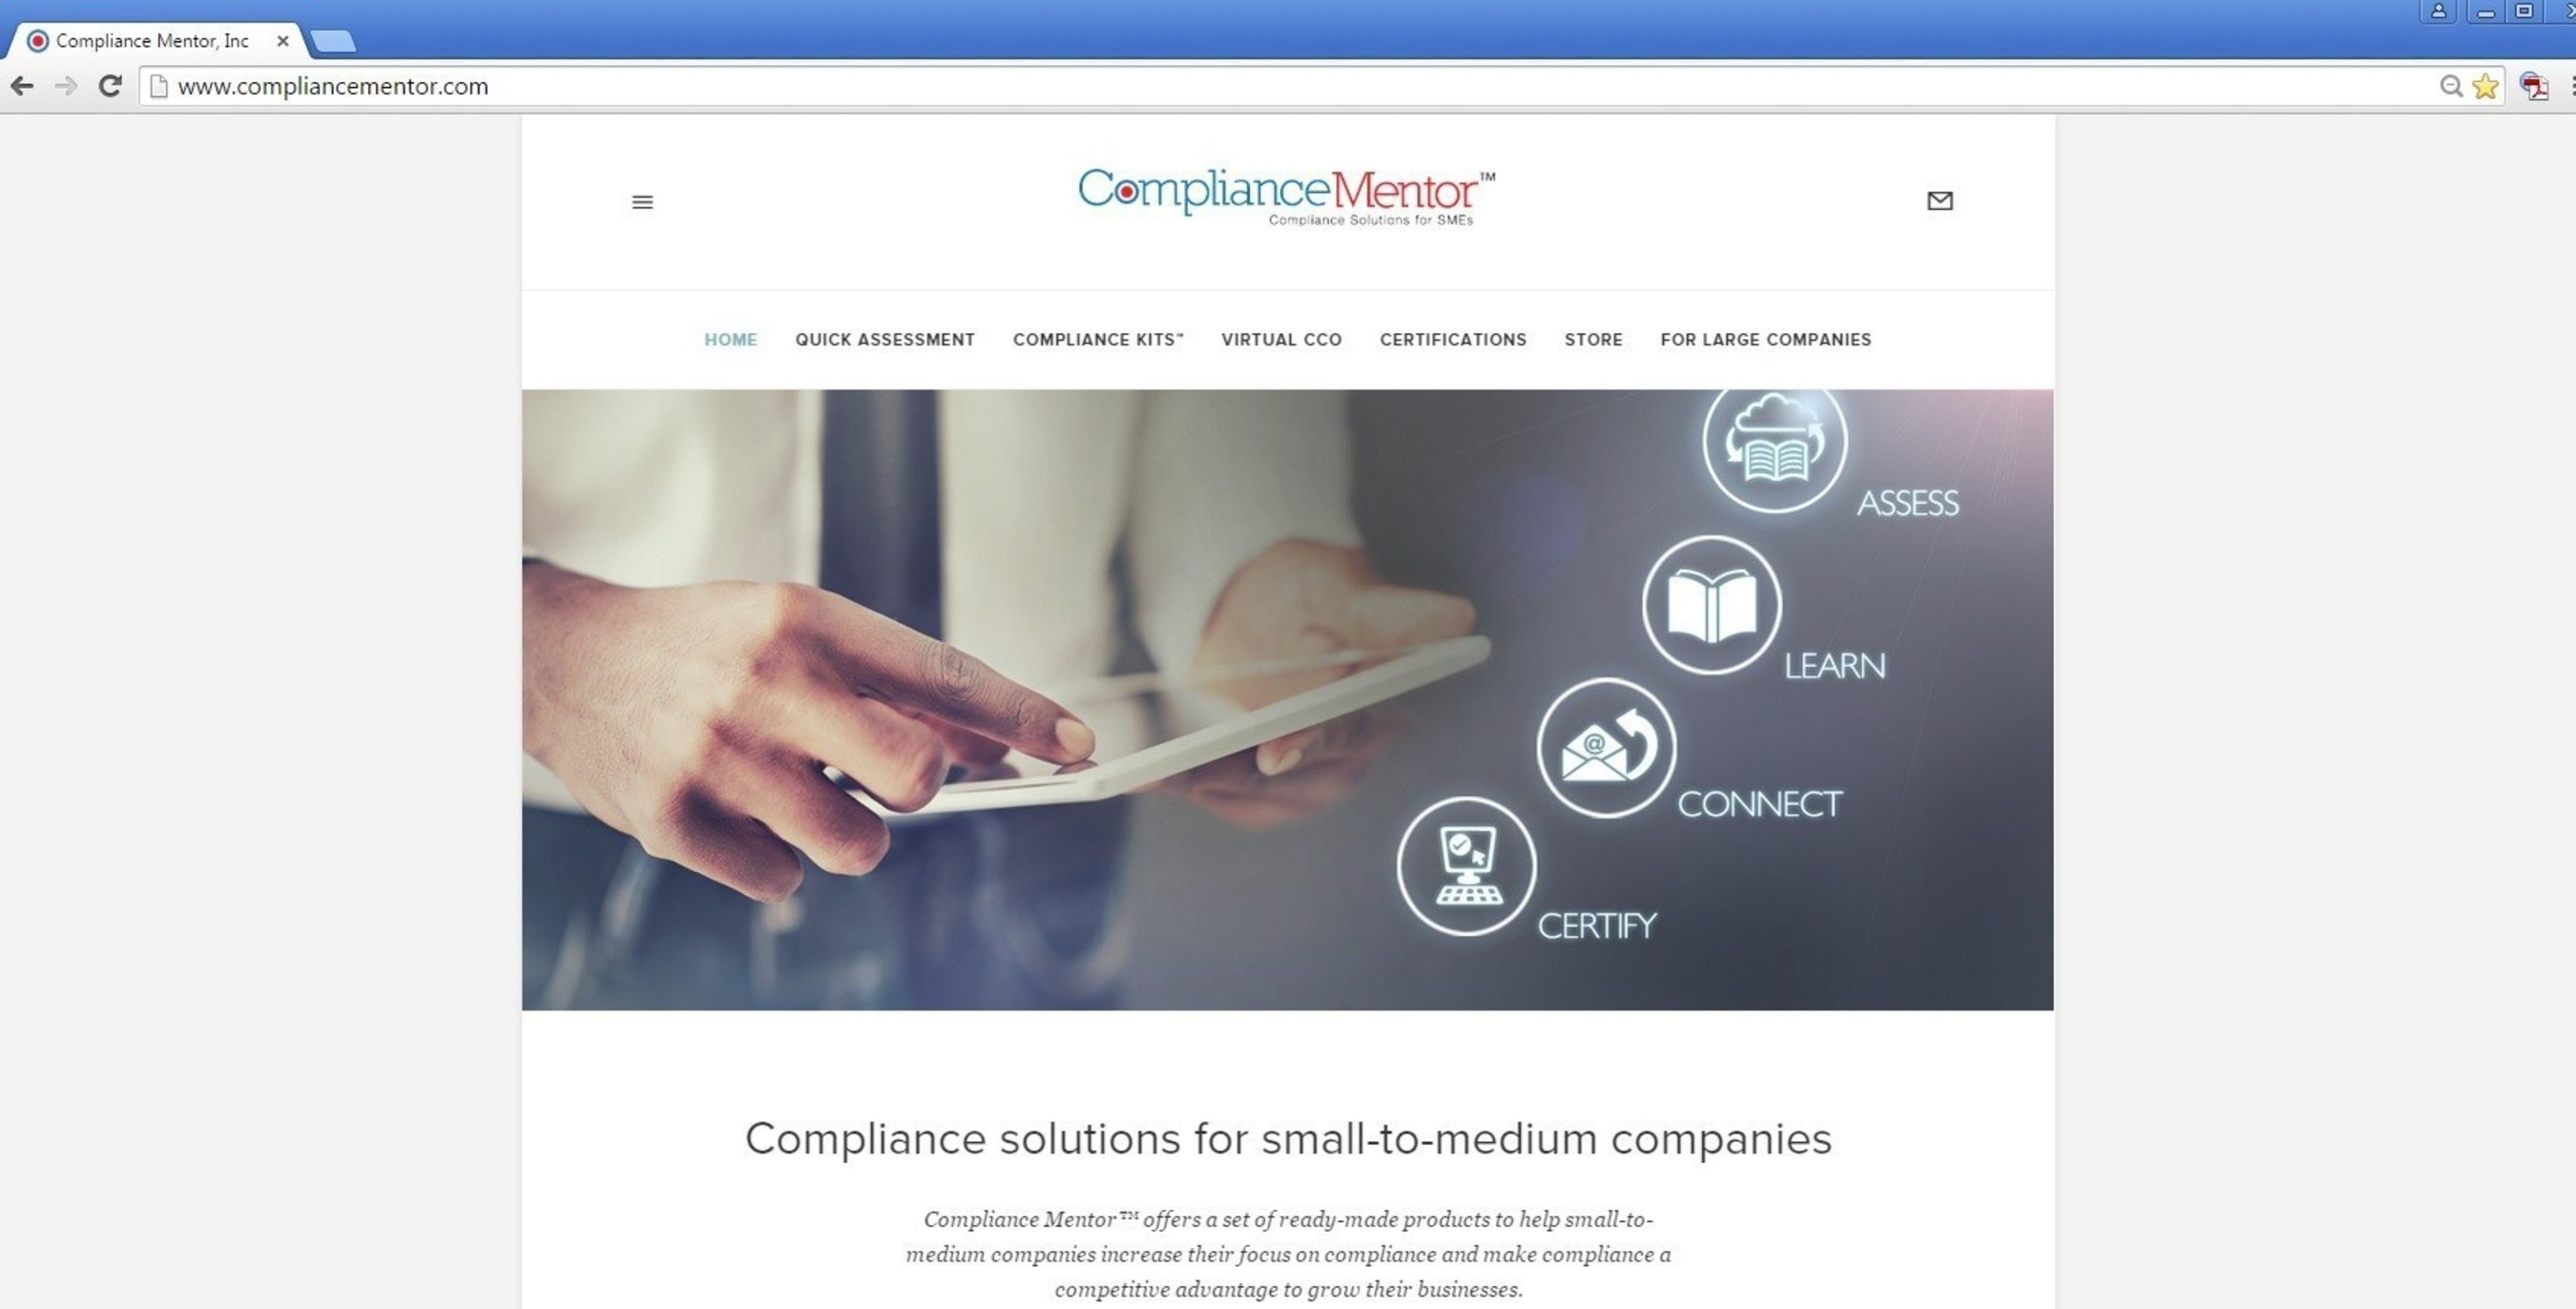 The Red Flag Group Partners with Compliance Mentor(TM), Which Provides Low-Cost Compliance